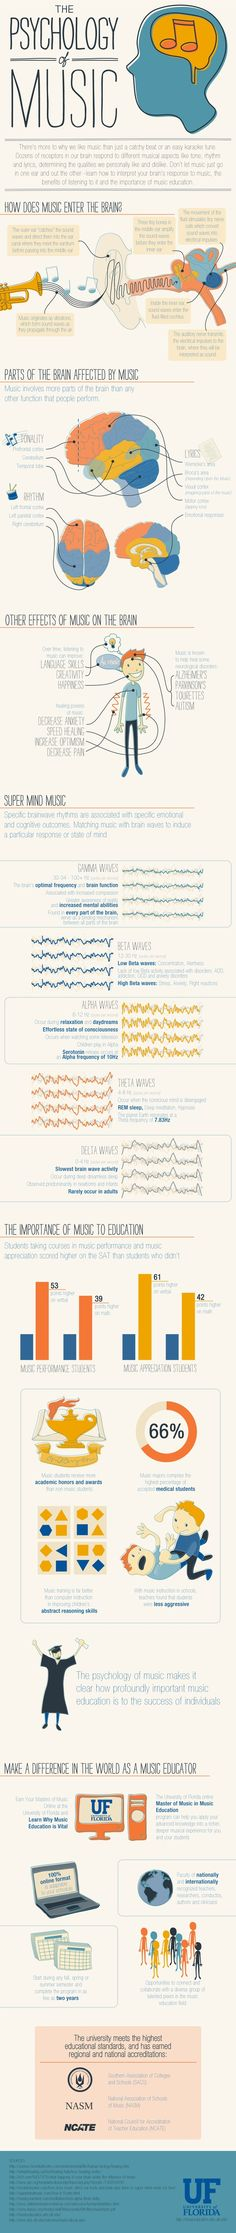 "Infographic about ""The Psychology of Music"" - from University of Florida Musico terapia - psicologia della musica Elementary Music, Elementary Schools, Teaching Music, Teaching Tools, Teaching Biology, Teaching Class, Music Therapy, Music Classroom, Music Teachers"